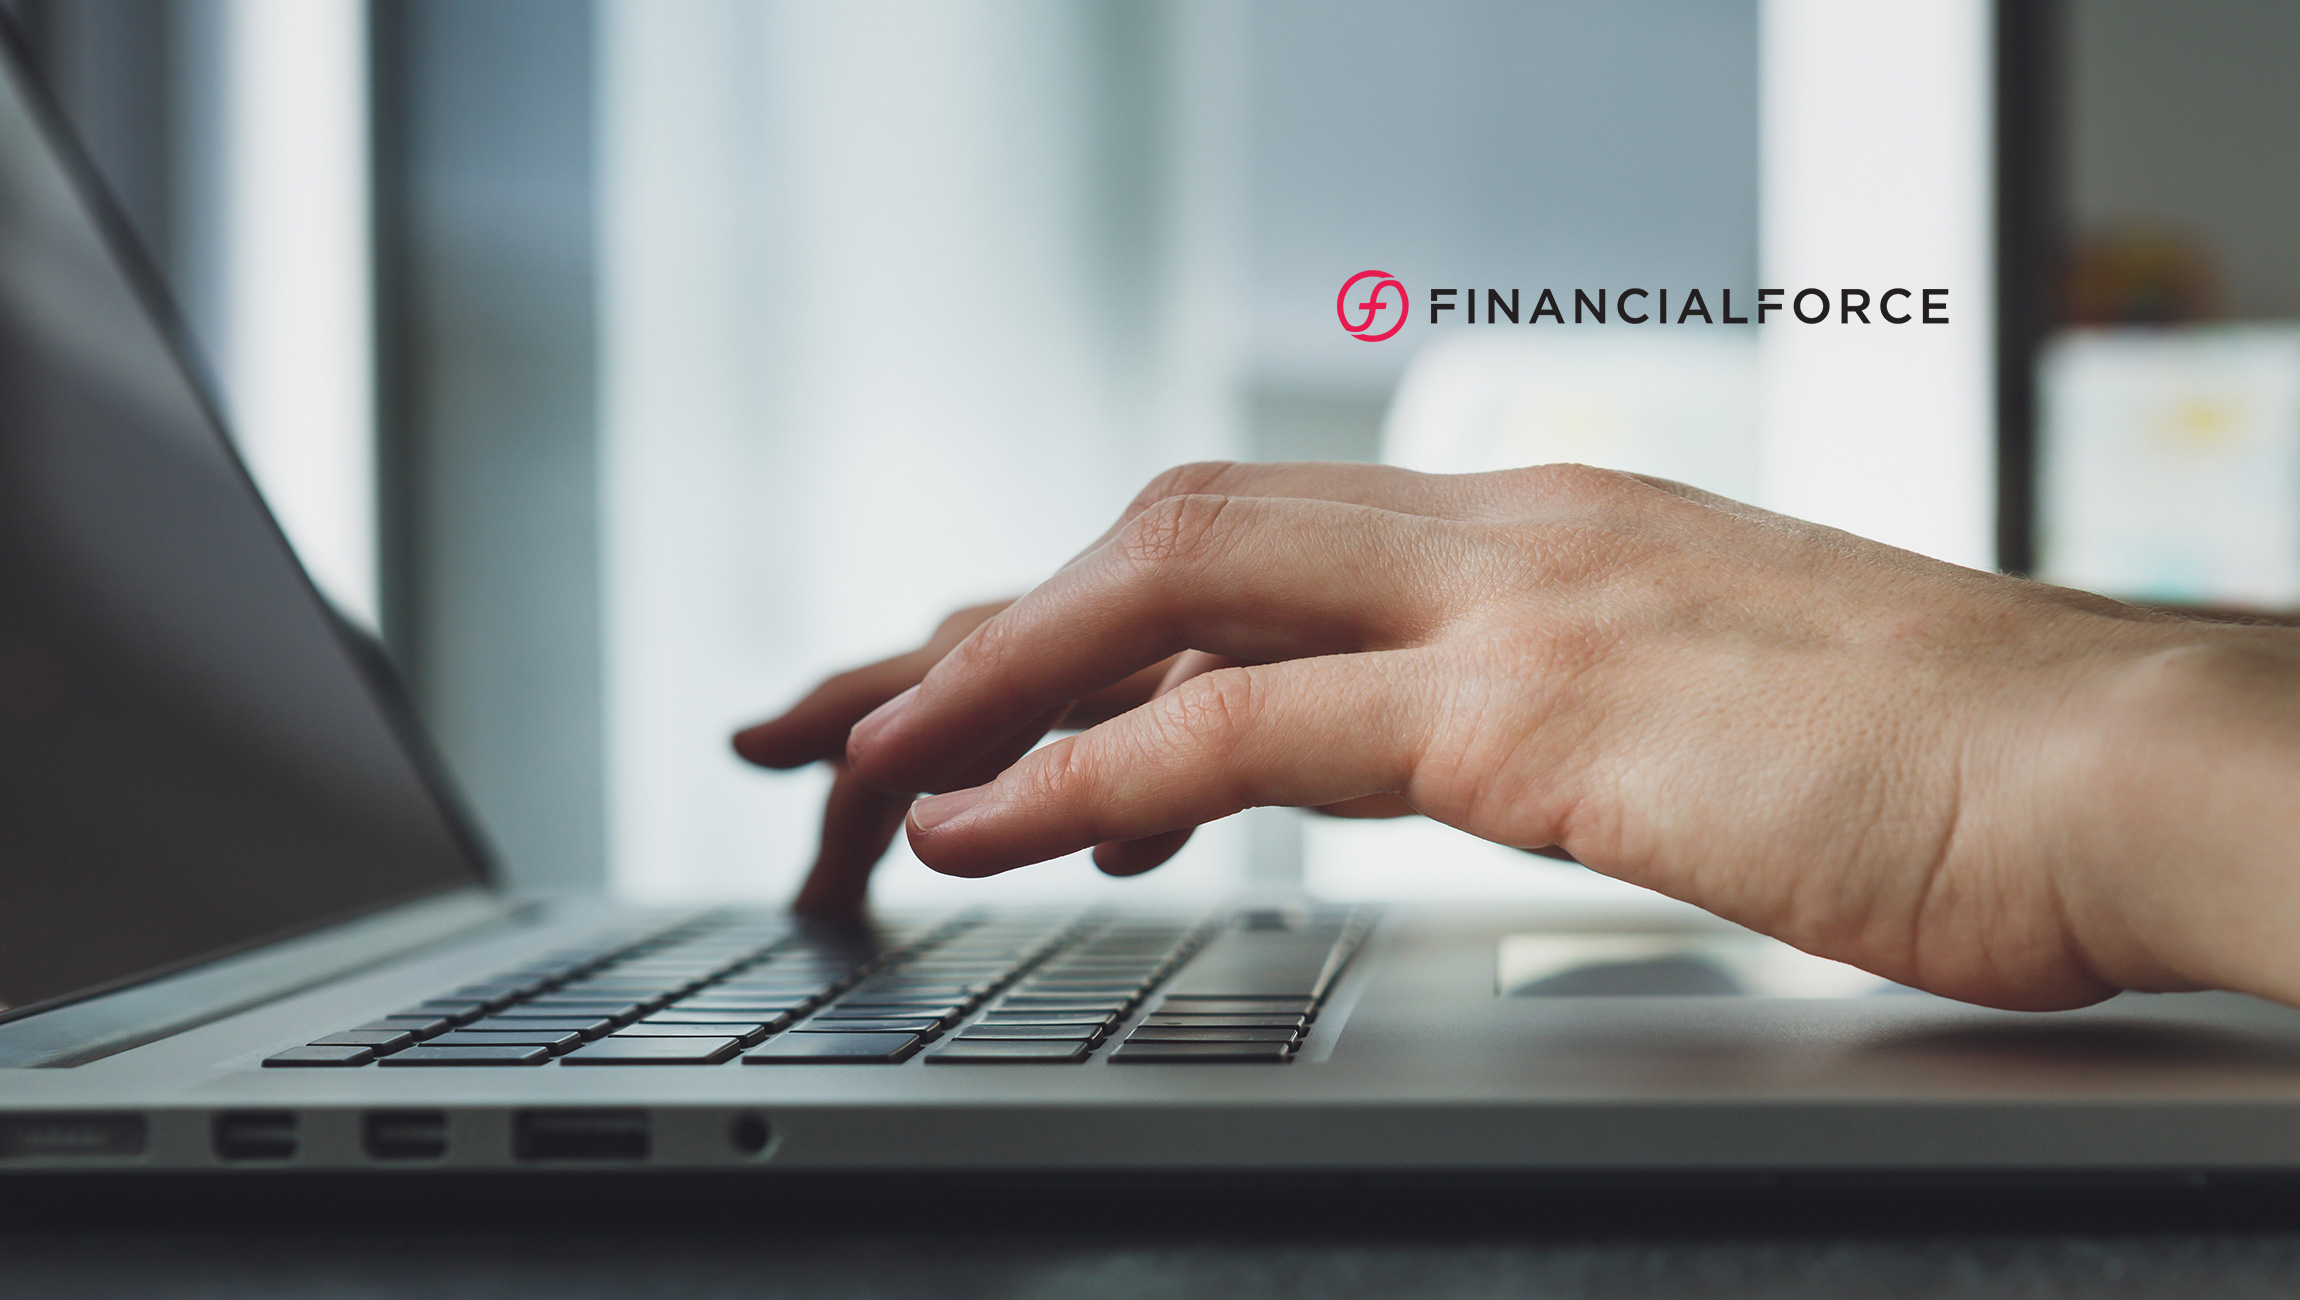 New Survey Reveals FinancialForce Is Top Installed Professional Services Automation Platform